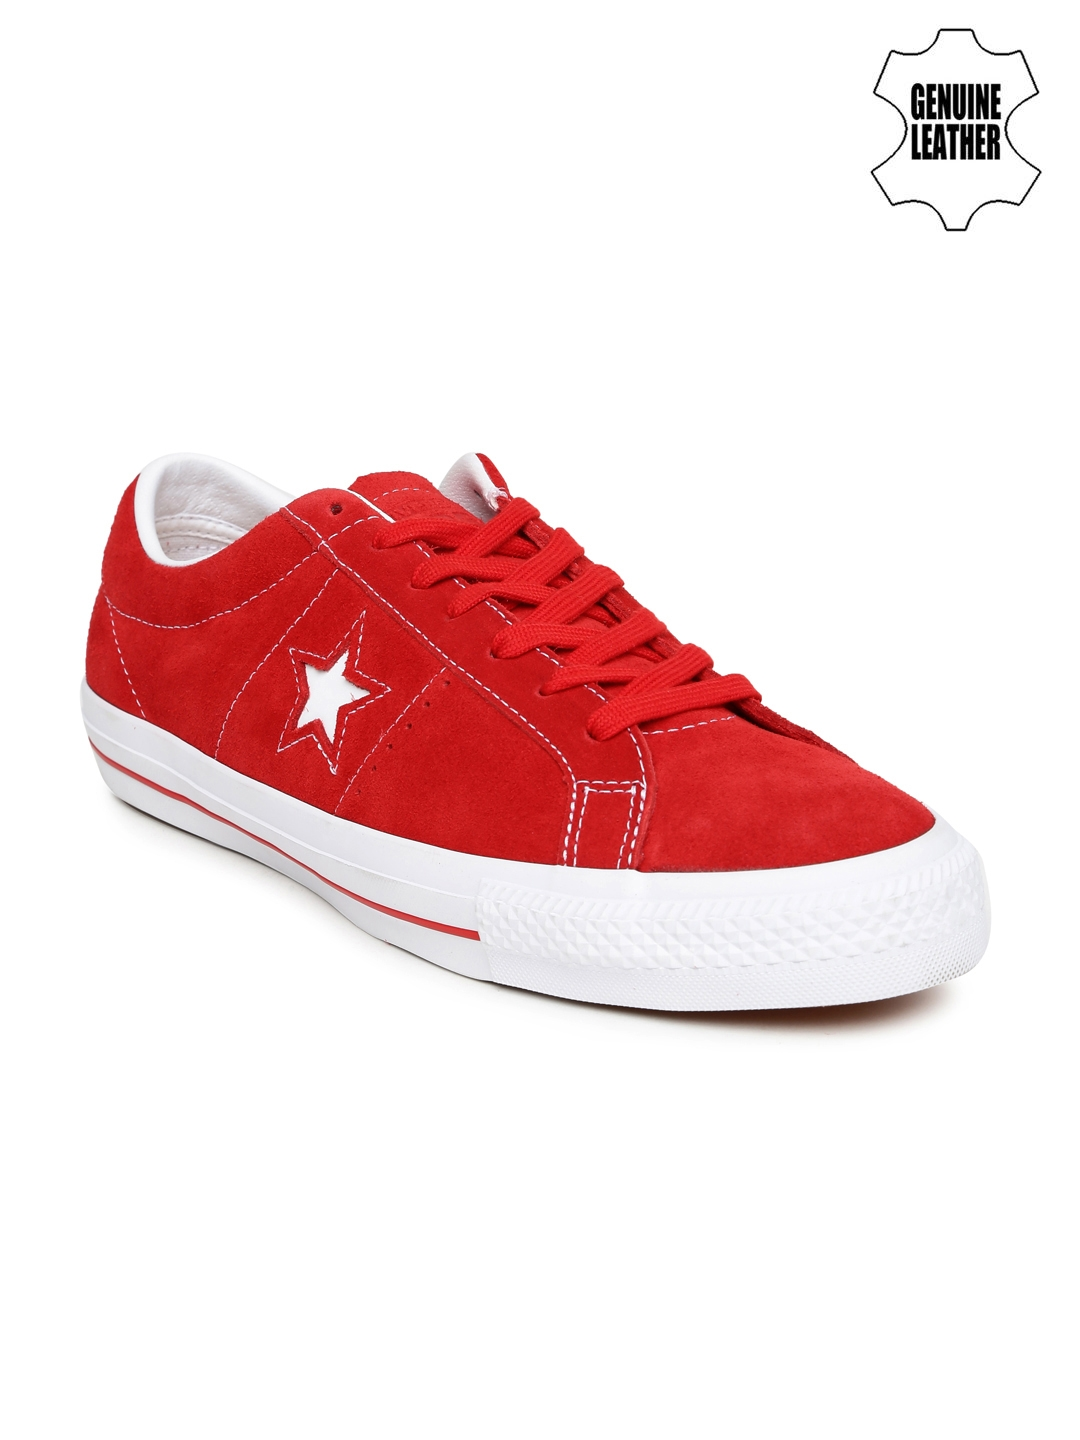 2c719248166c Buy Converse Unisex Red Suede Sneakers - Casual Shoes for Unisex ...